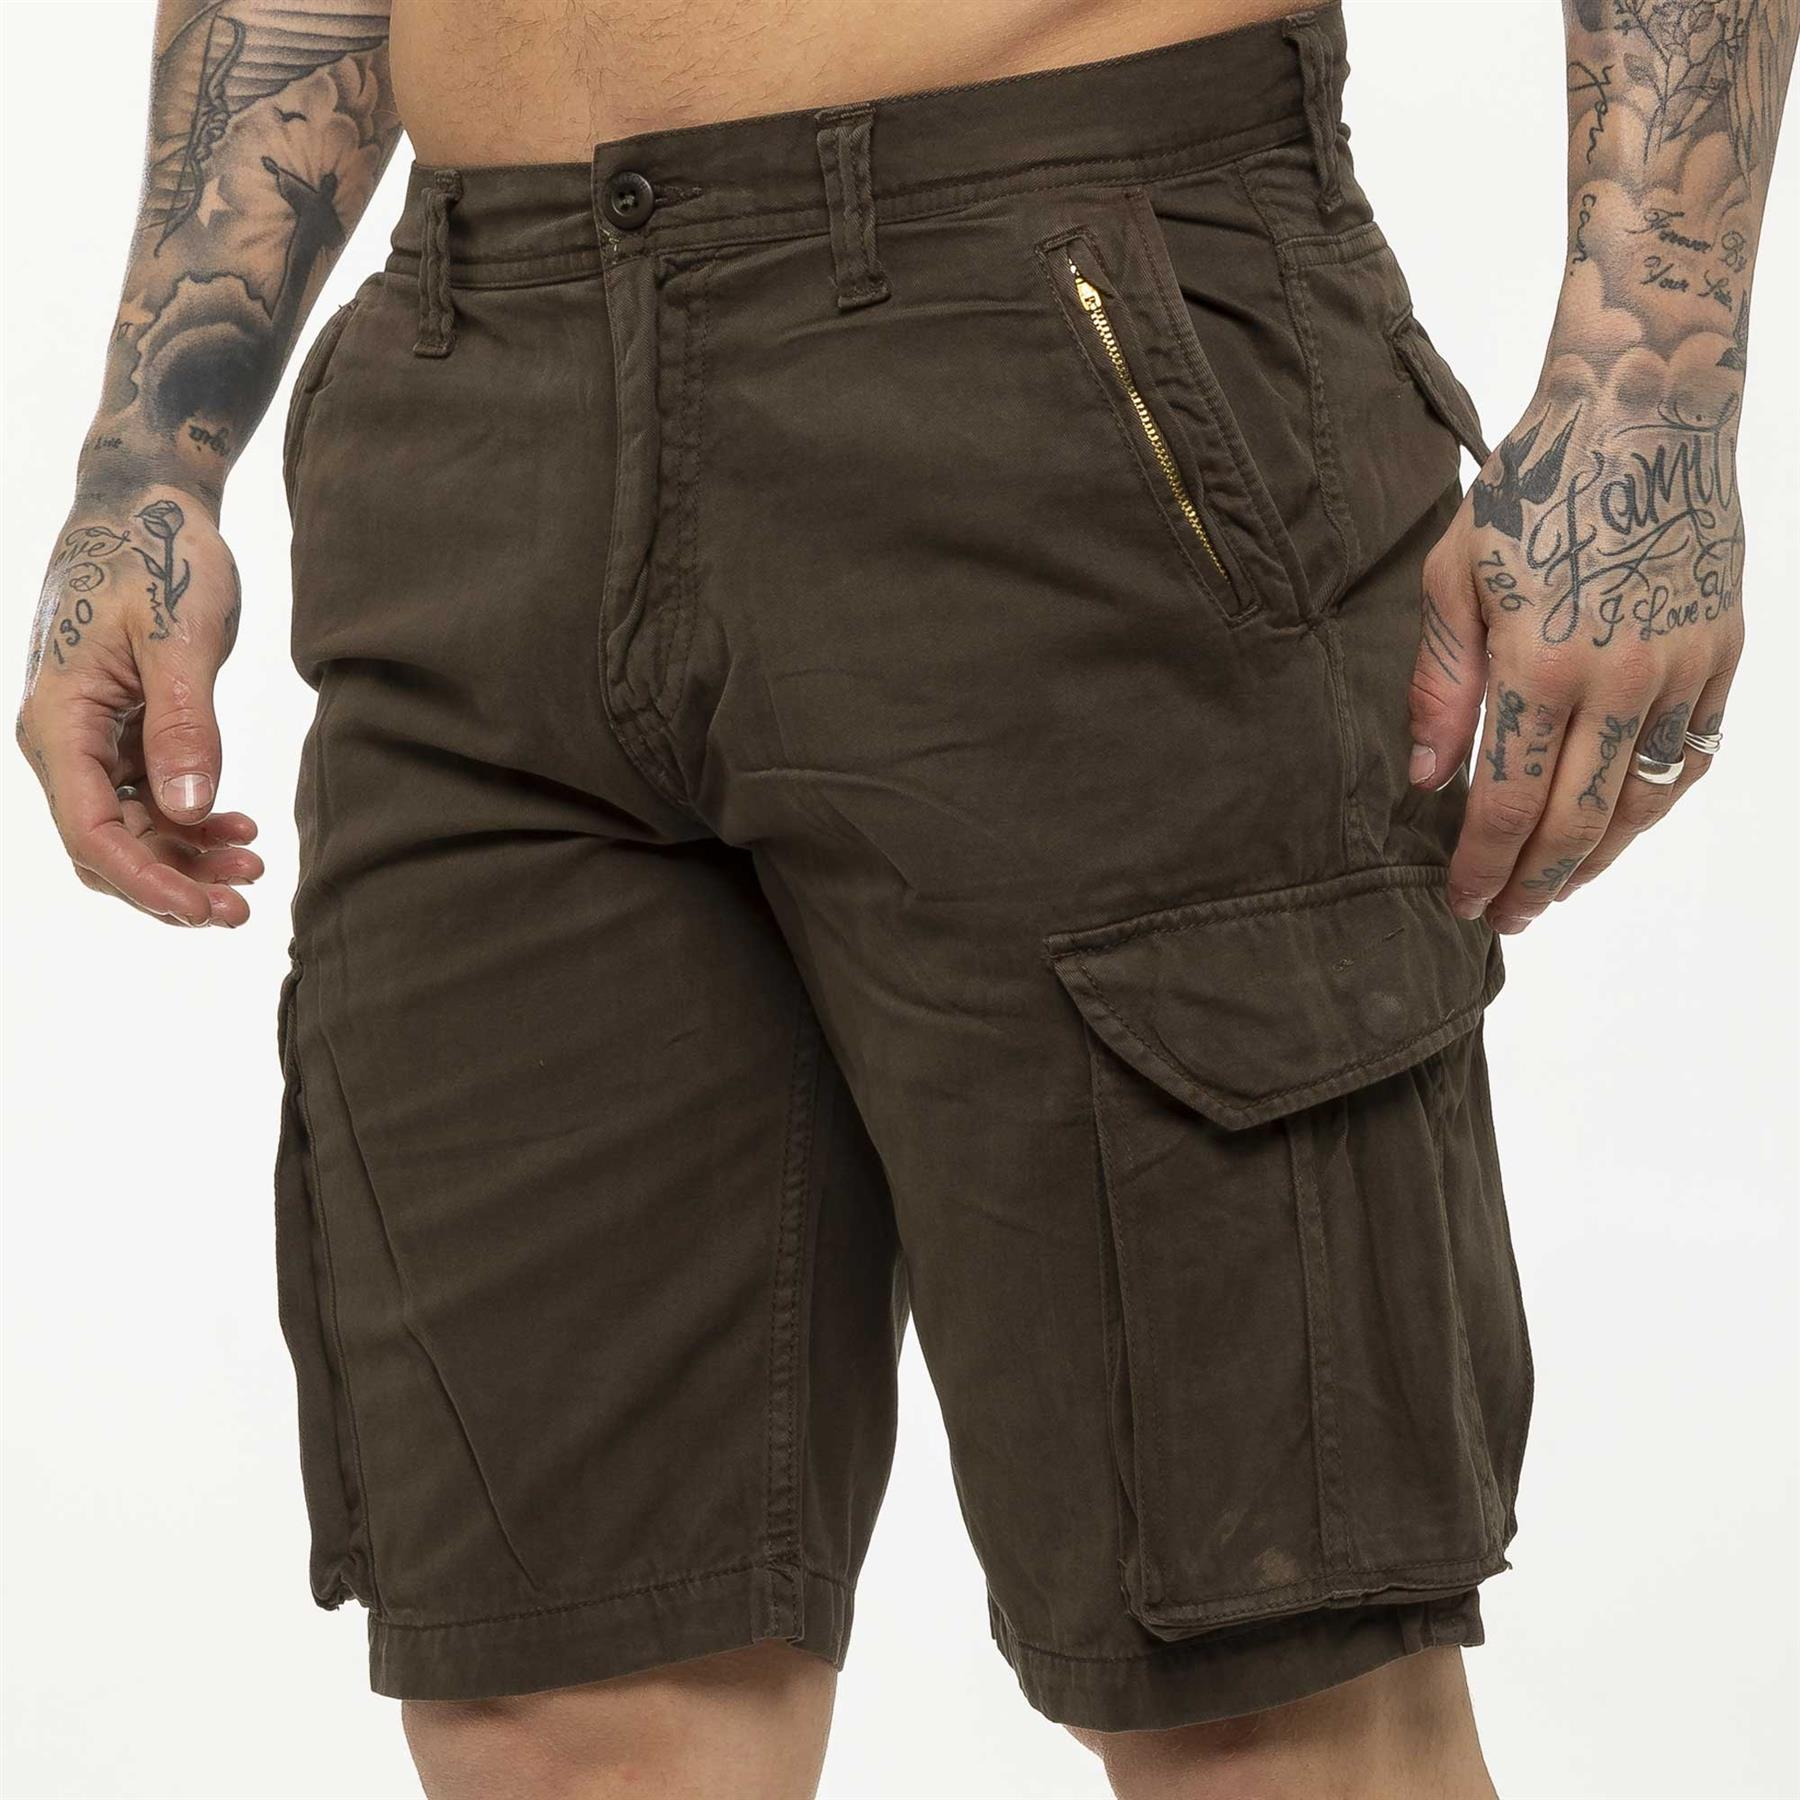 thumbnail 46 - Kruze Jeans Mens Army Combat Shorts Camouflage Cargo Casual Camo Work Half Pants